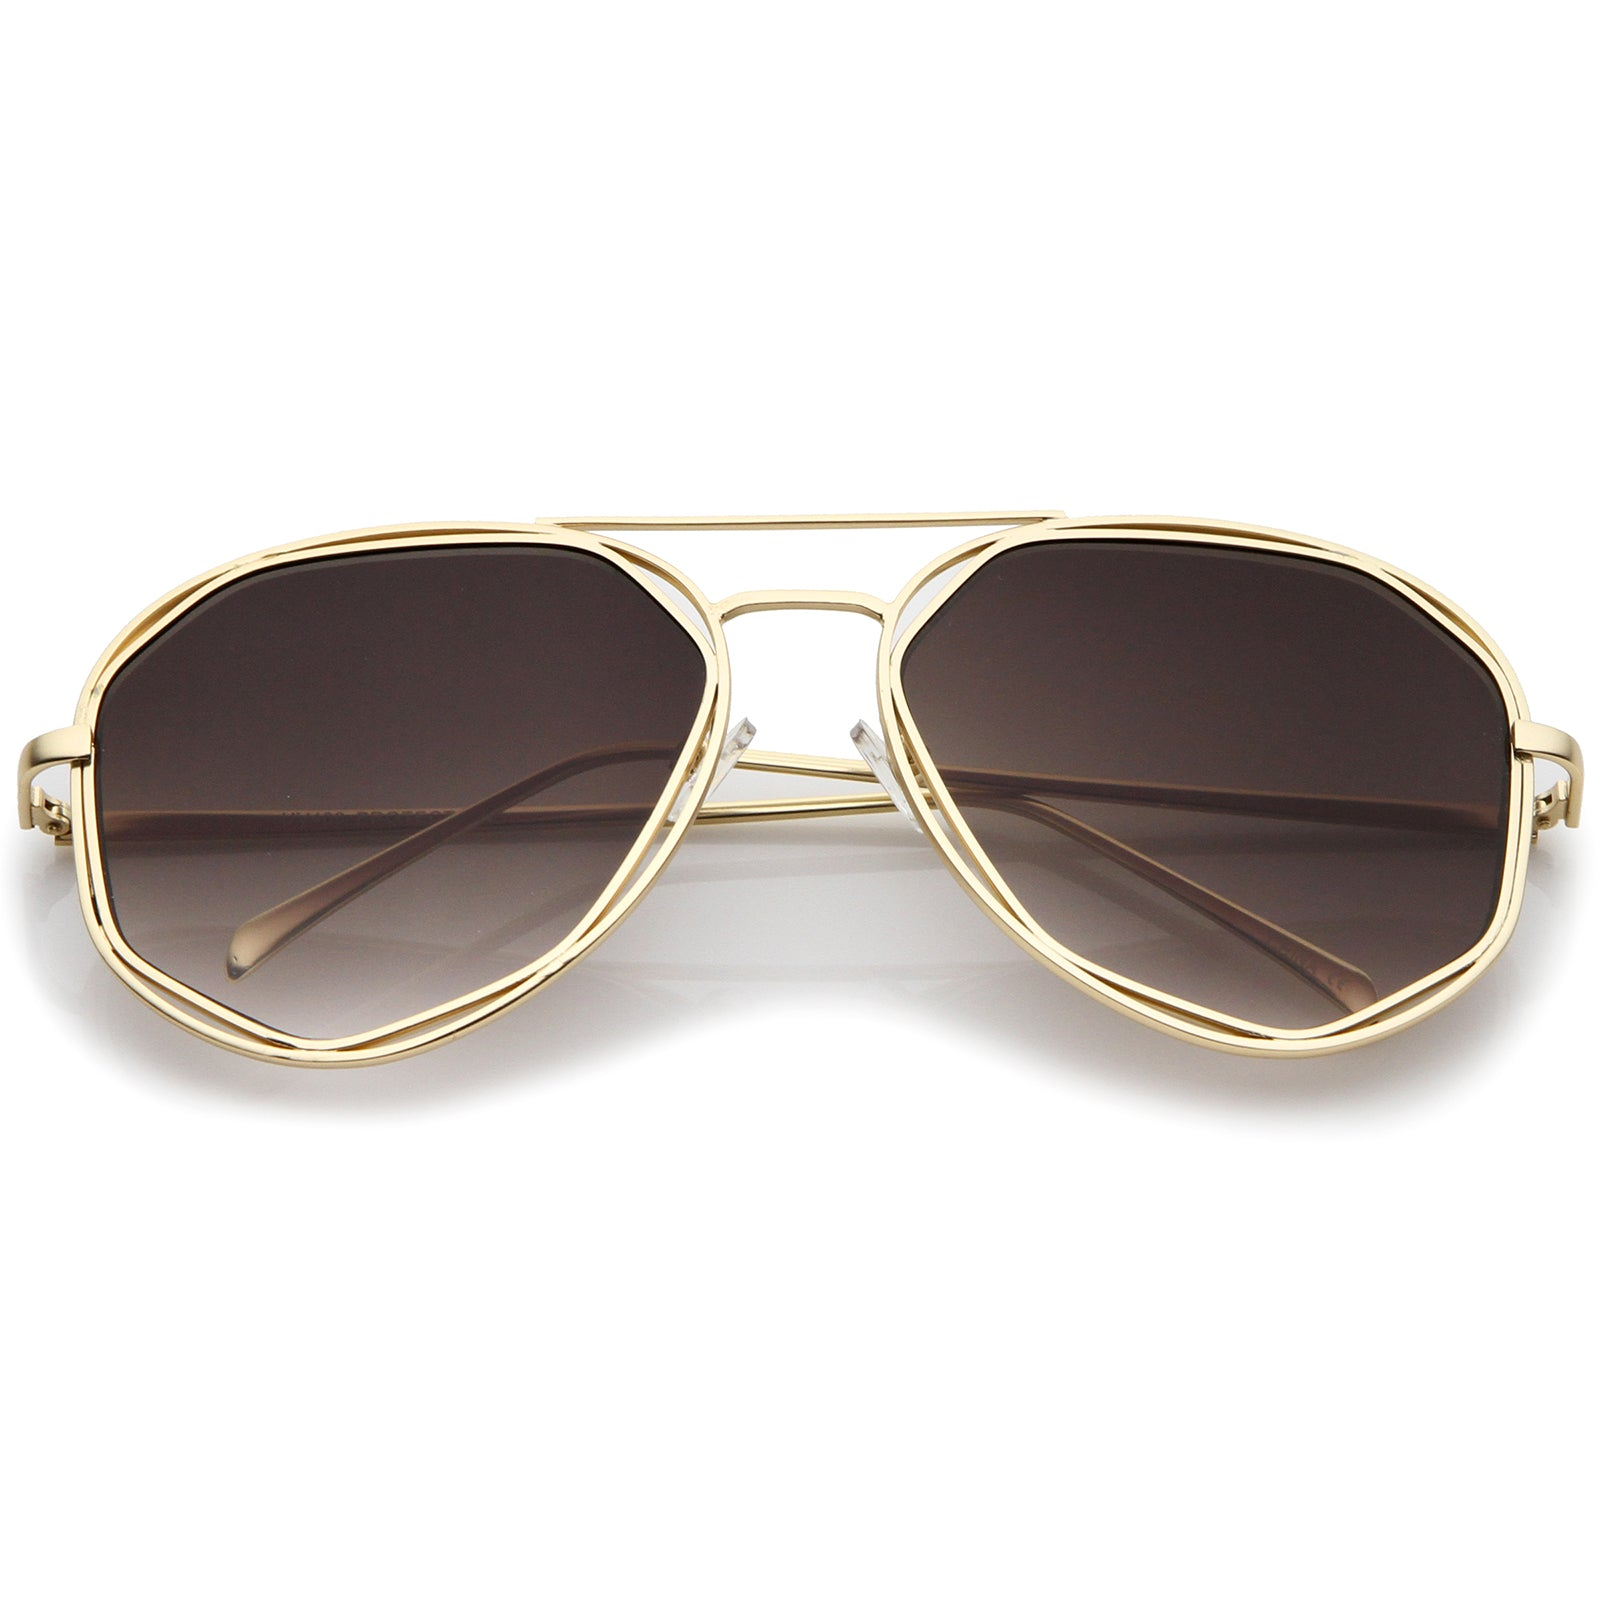 Geometric Hexagonal Metal Frame Neutral Colored Flat Lens Aviator Sunglasses 60mm - sunglass.la - 5